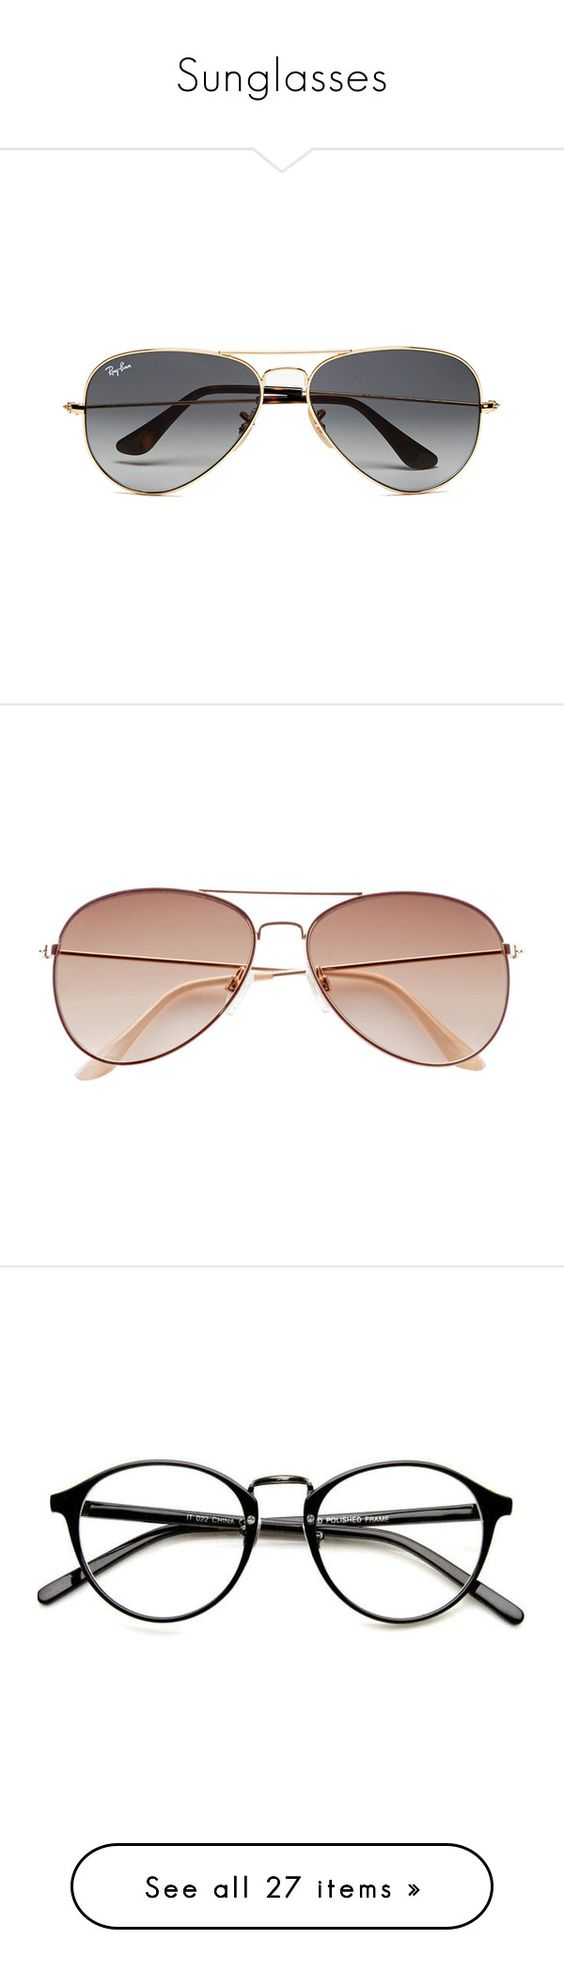 """""""Sunglasses"""" by isabel-harsh ❤ liked on Polyvore featuring men's fashion, men's accessories, men's eyewear, men's sunglasses, accessories, men, glasses, sunglasses, men's wear and mens gold aviator sunglasses"""